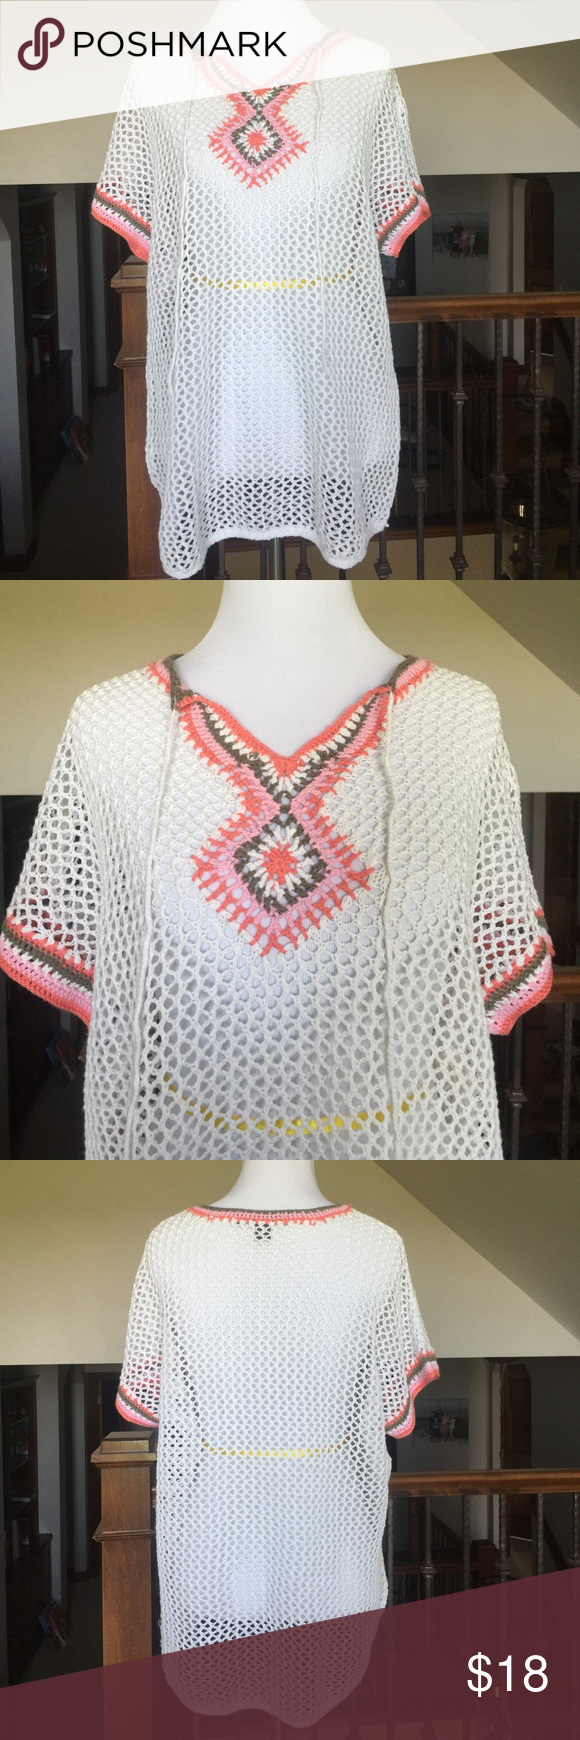 """Tommy Bahama Top Or Coverup🌴 Never worn in like new condition! Can be worn as Top or Coverup. 29""""L Colors: white, coral, pink, khaki Tommy Bahama Swim Coverups"""